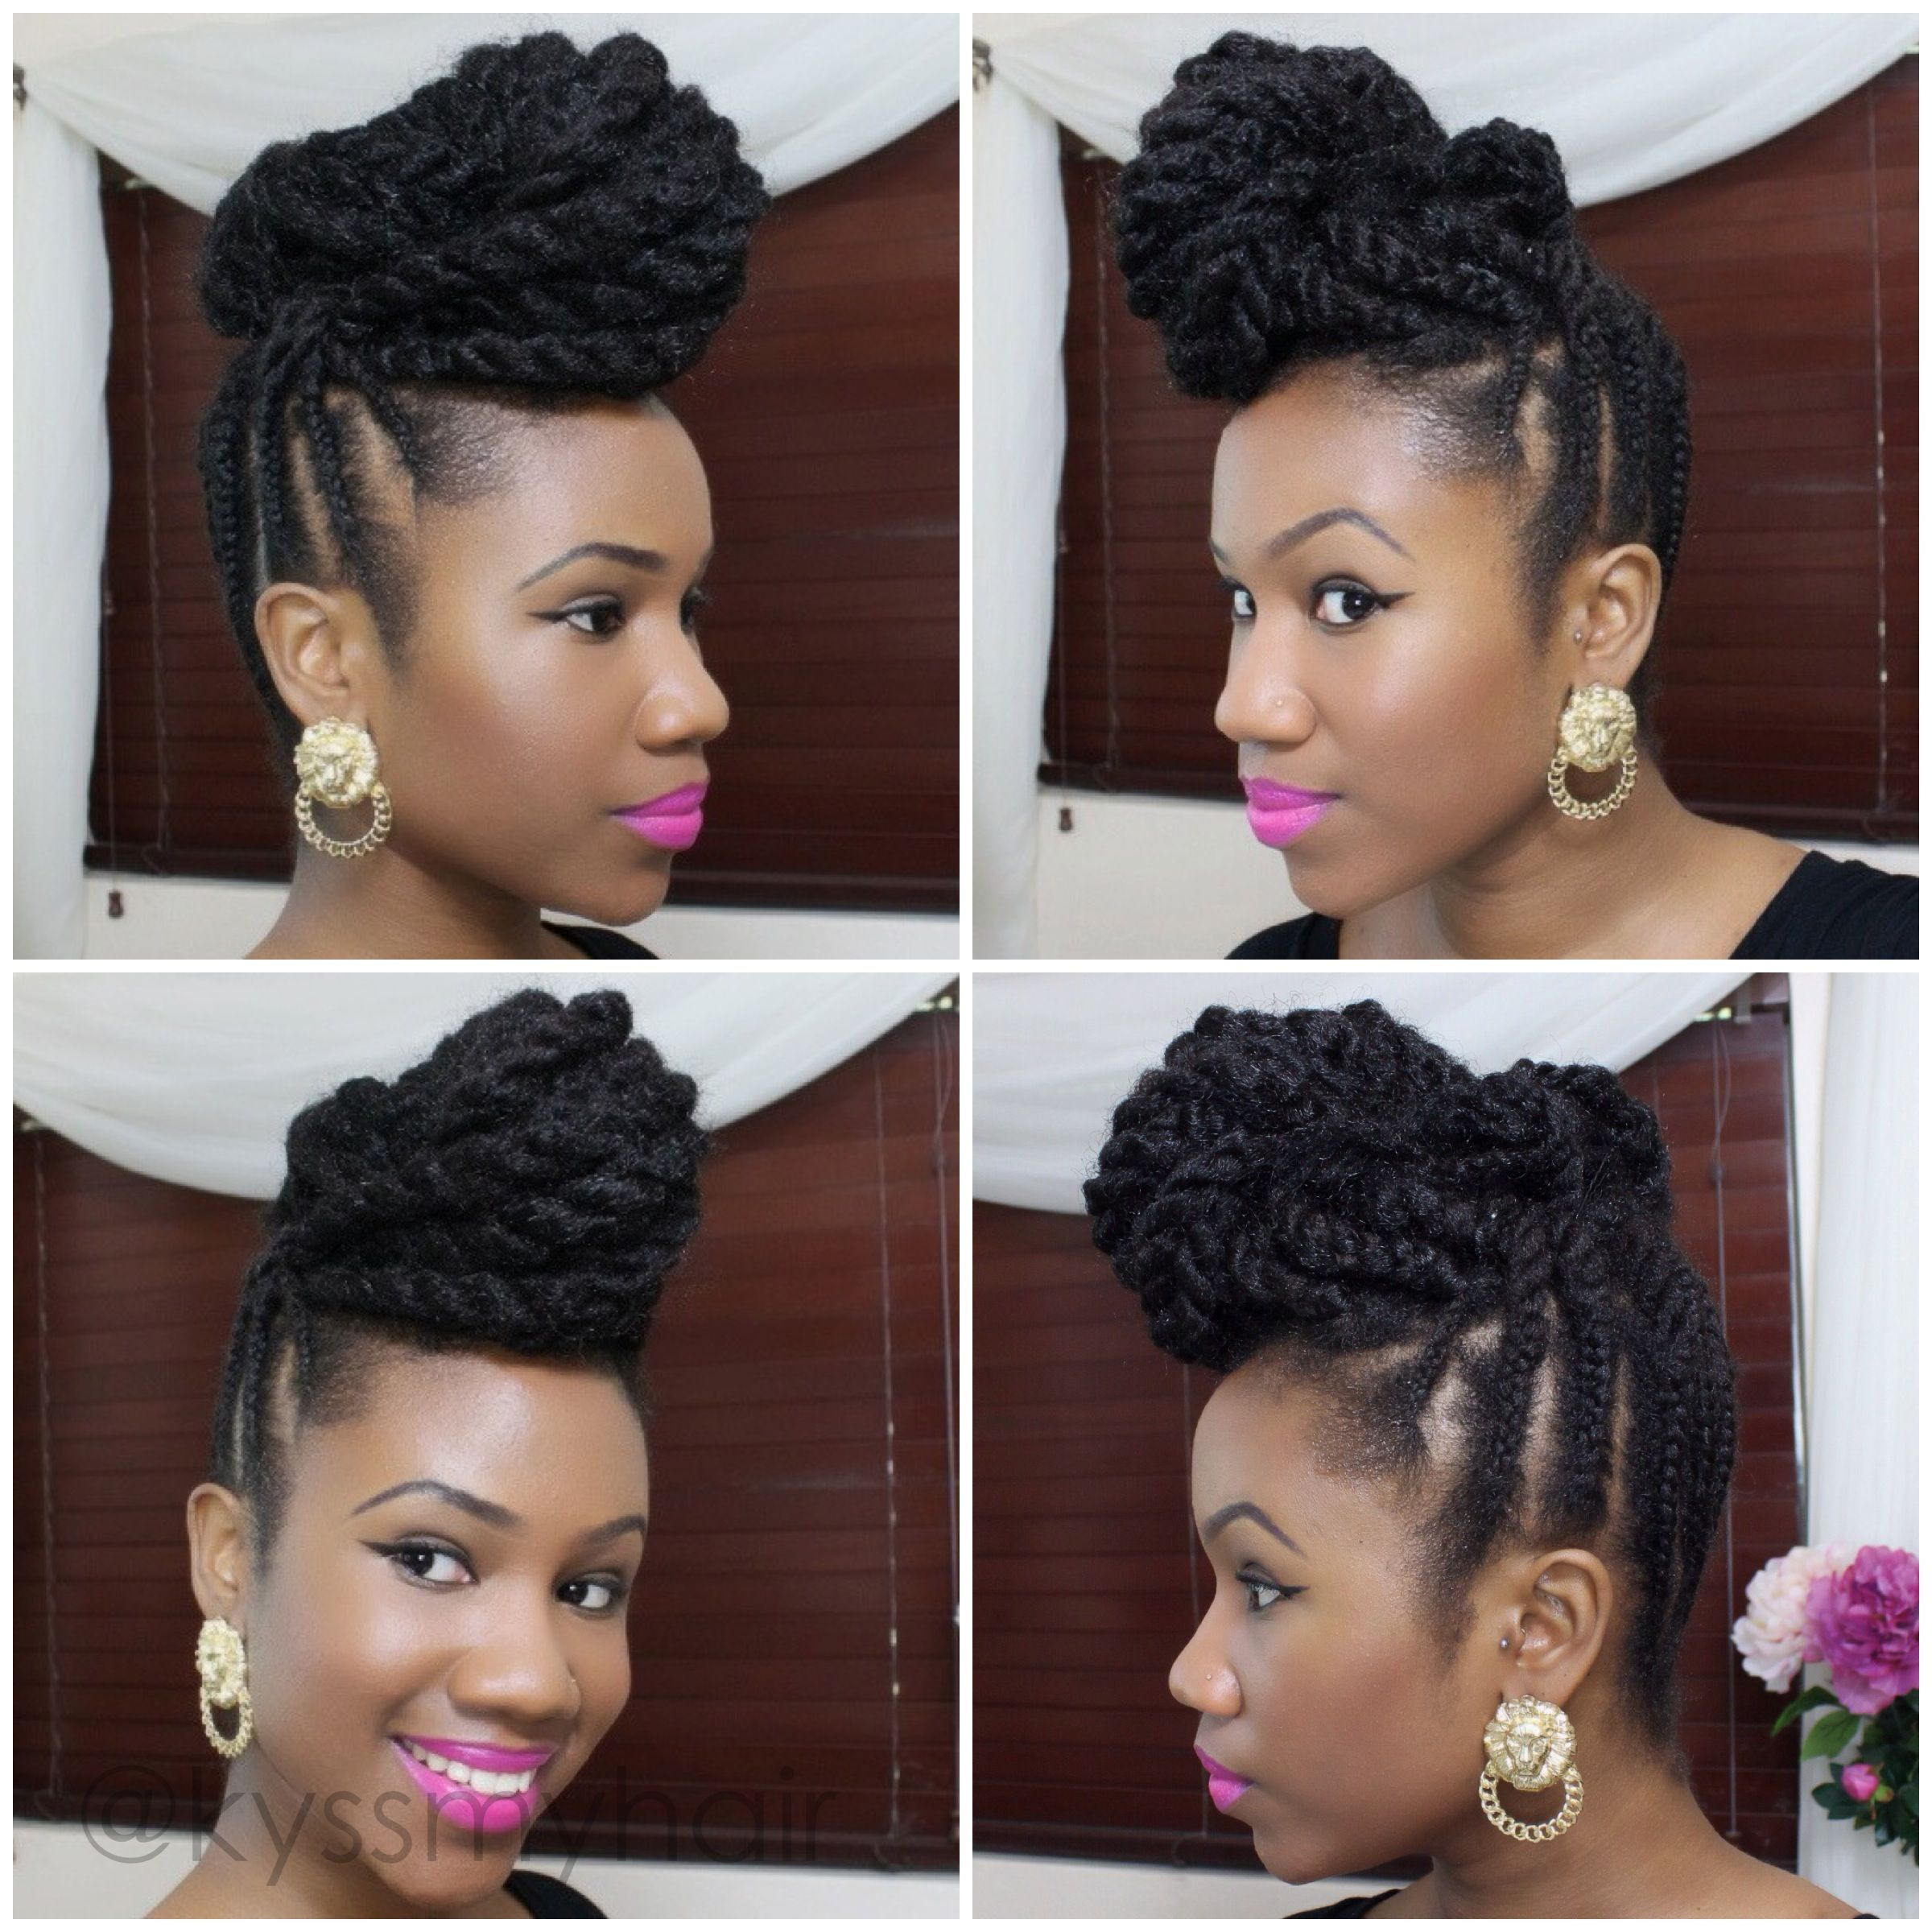 Braided Updo On Natural Hair Using Marley Hair Kyss My Hair Natural Hair Updo Hair Styles Braided Hairstyles Updo